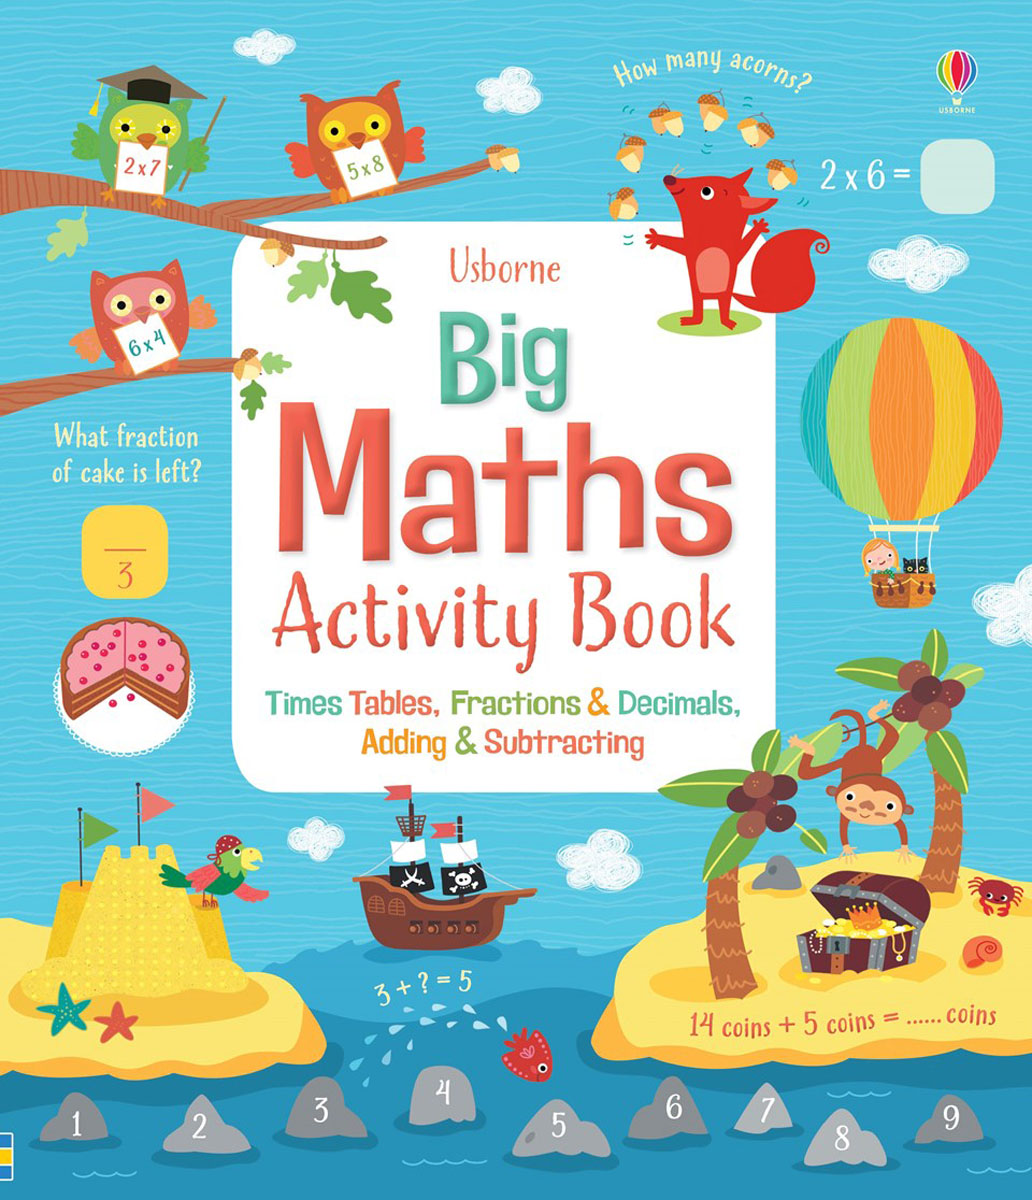 Big maths activity book get wise mastering grammar skills mastering math skills mastering vocabulary skills mastering writing skills